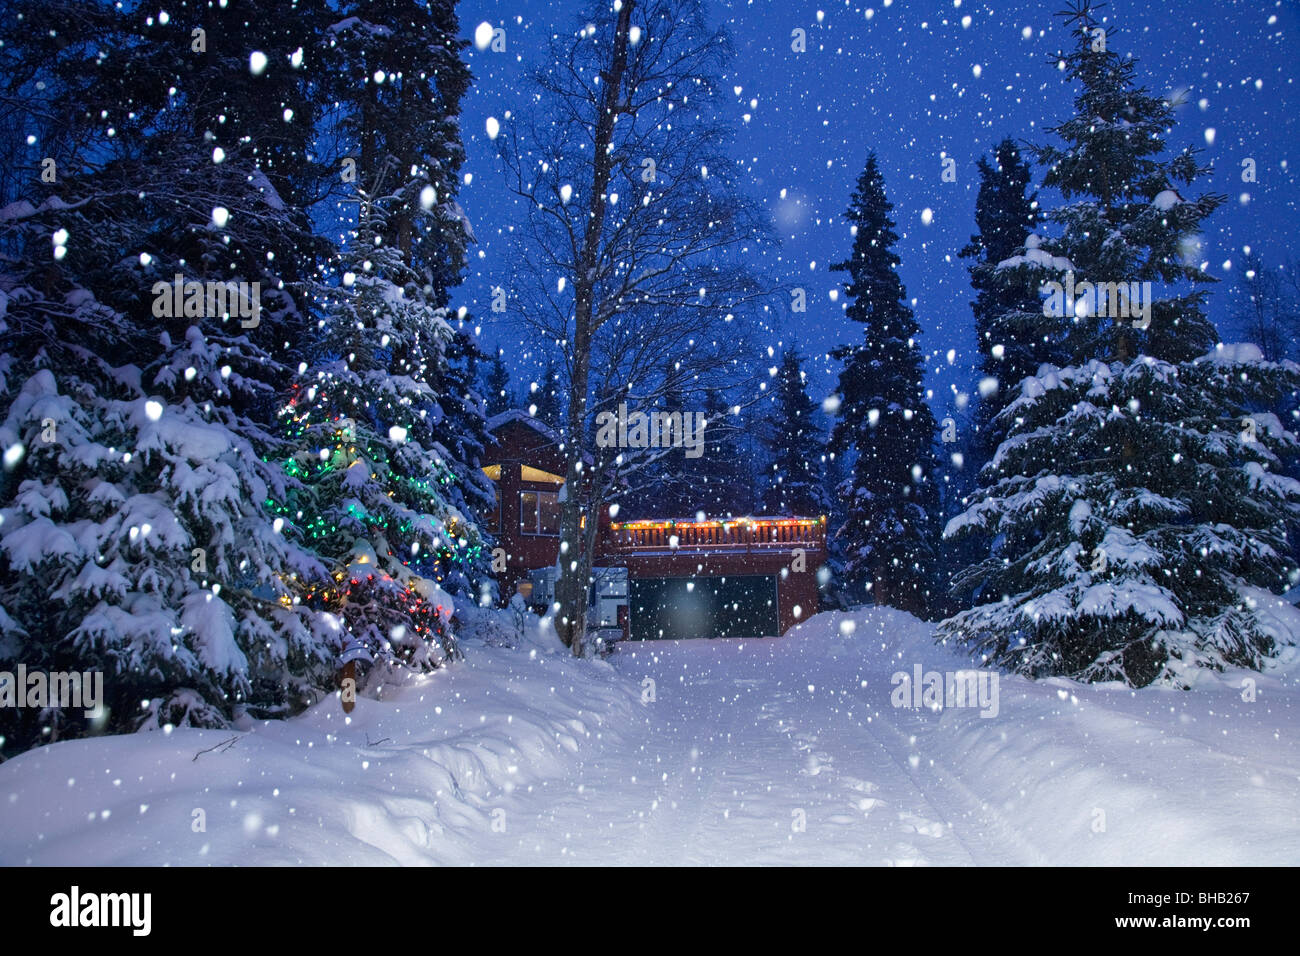 Snow falling on a lit Christmas tree beside a snow covered driveway Stock Photo, Royalty Free ...